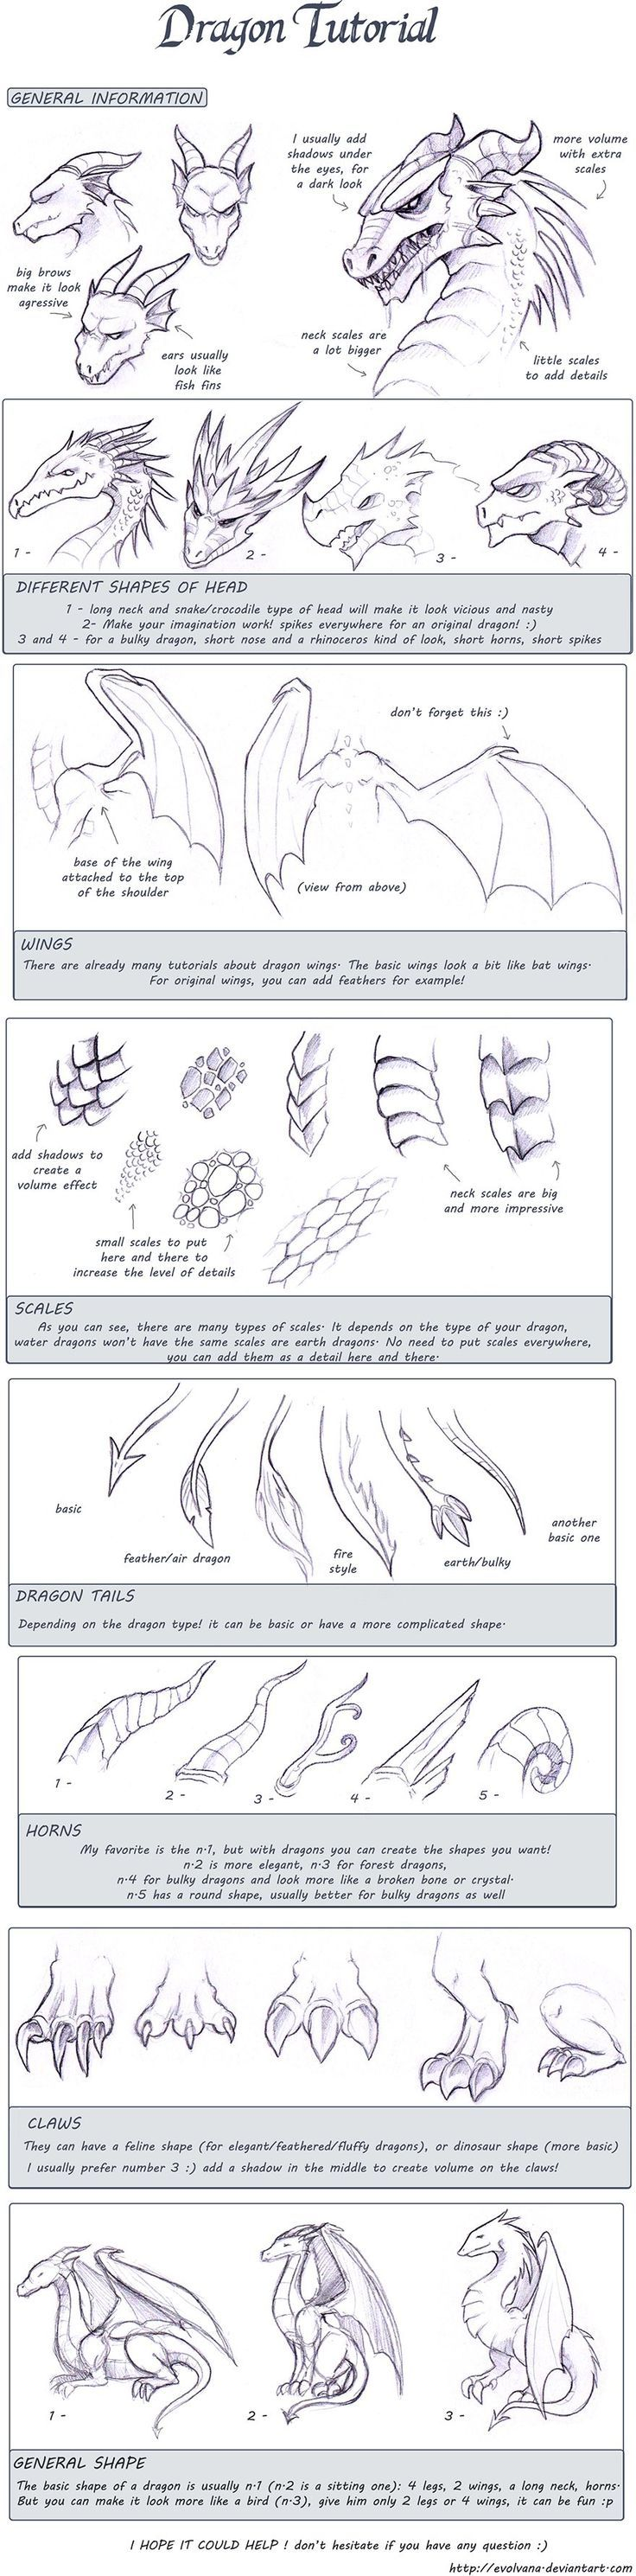 Dragon tutorial by Evolving.deviantart.com ~ love this... Its fun to draw fantasy animals & let your mind go wherever, cause there's no right or wrong with a mythical subject!: